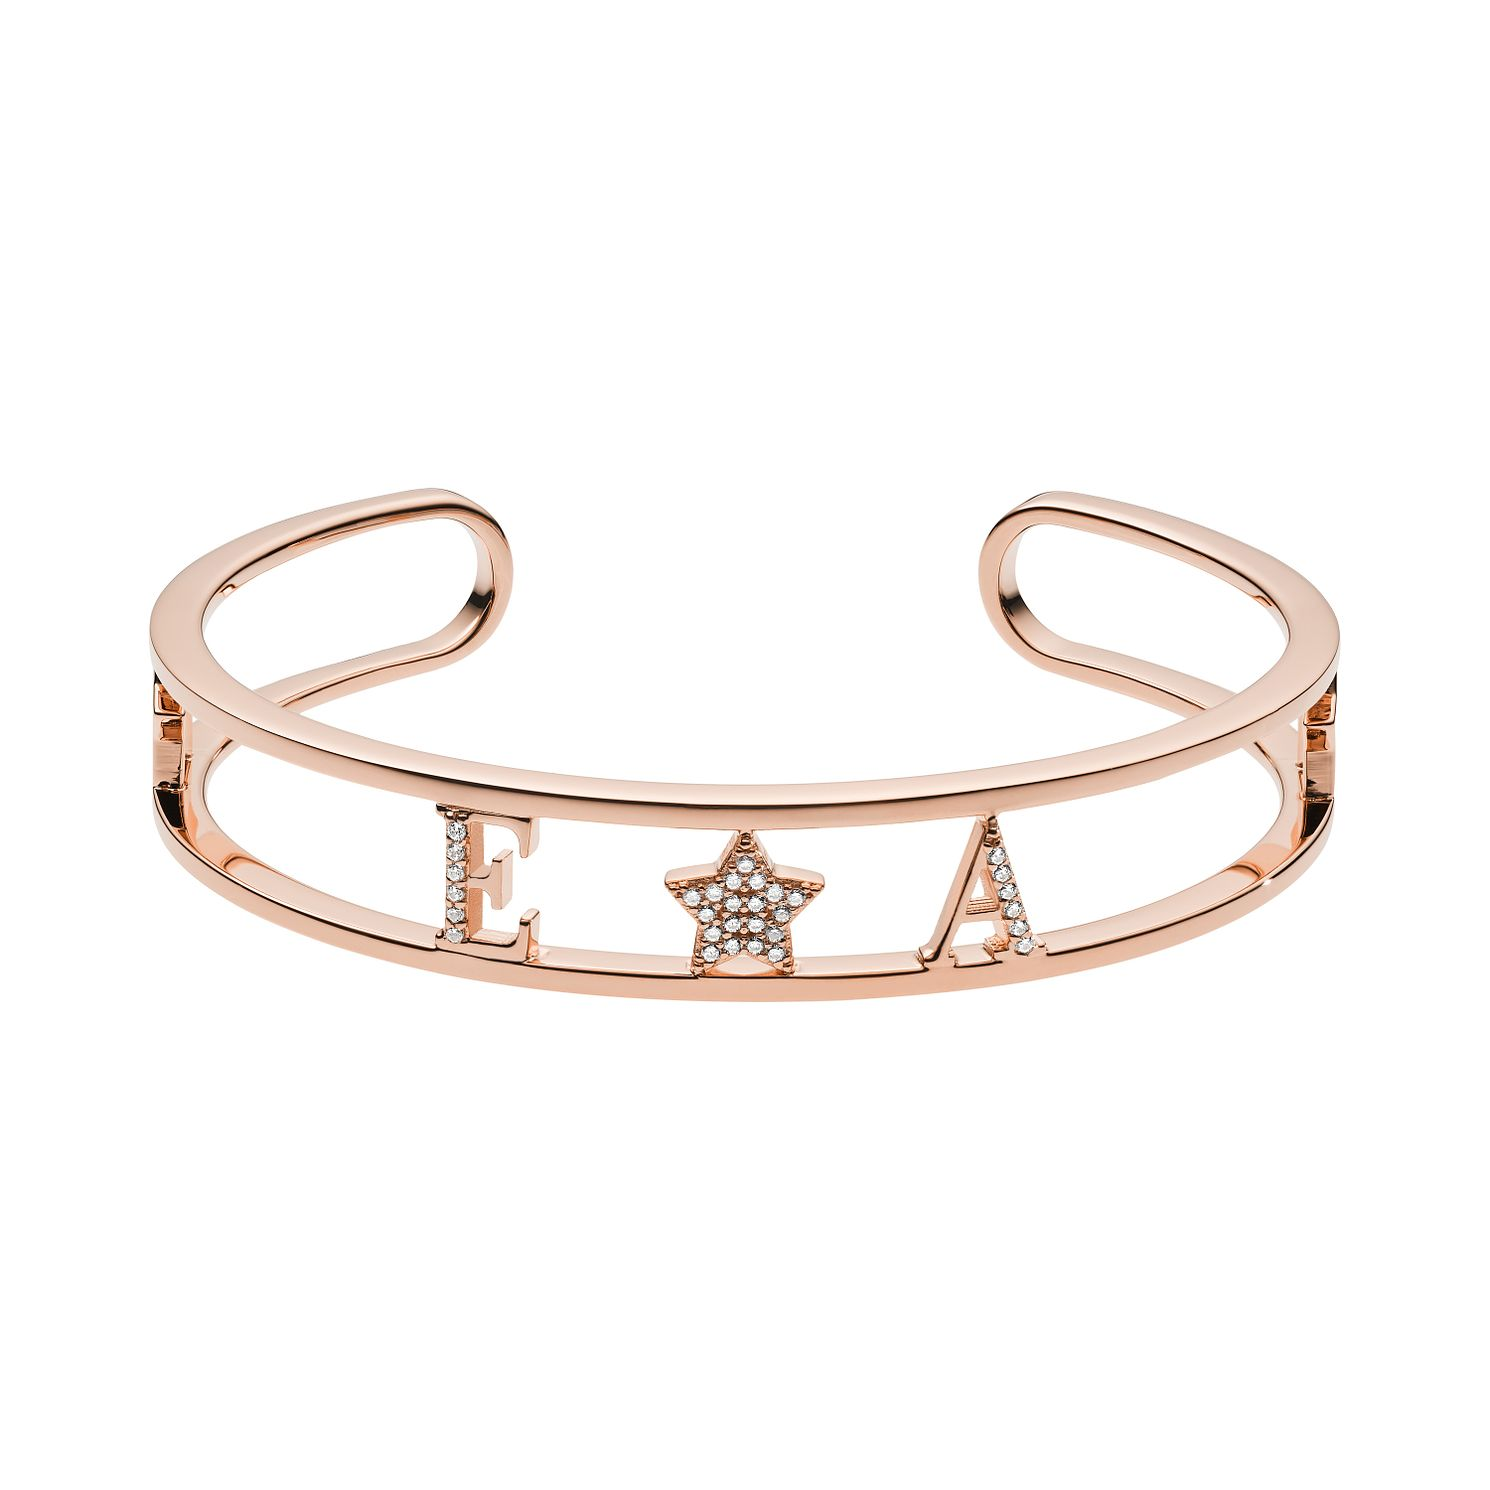 Emporio Armani Rose Gold Tone Swarovski Crystal Bangle - Product number 3485803